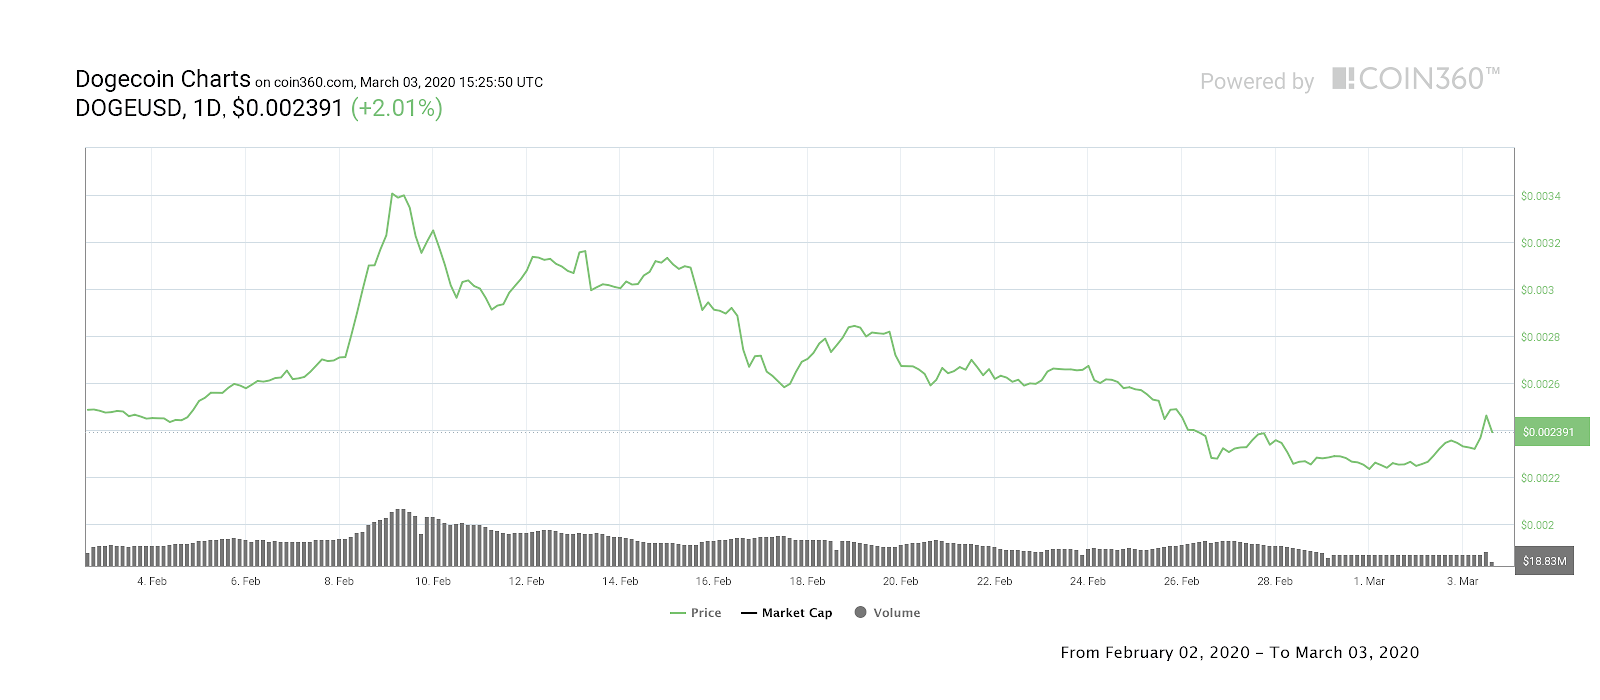 Dogecoin 30-day price chart. Source: Coin360